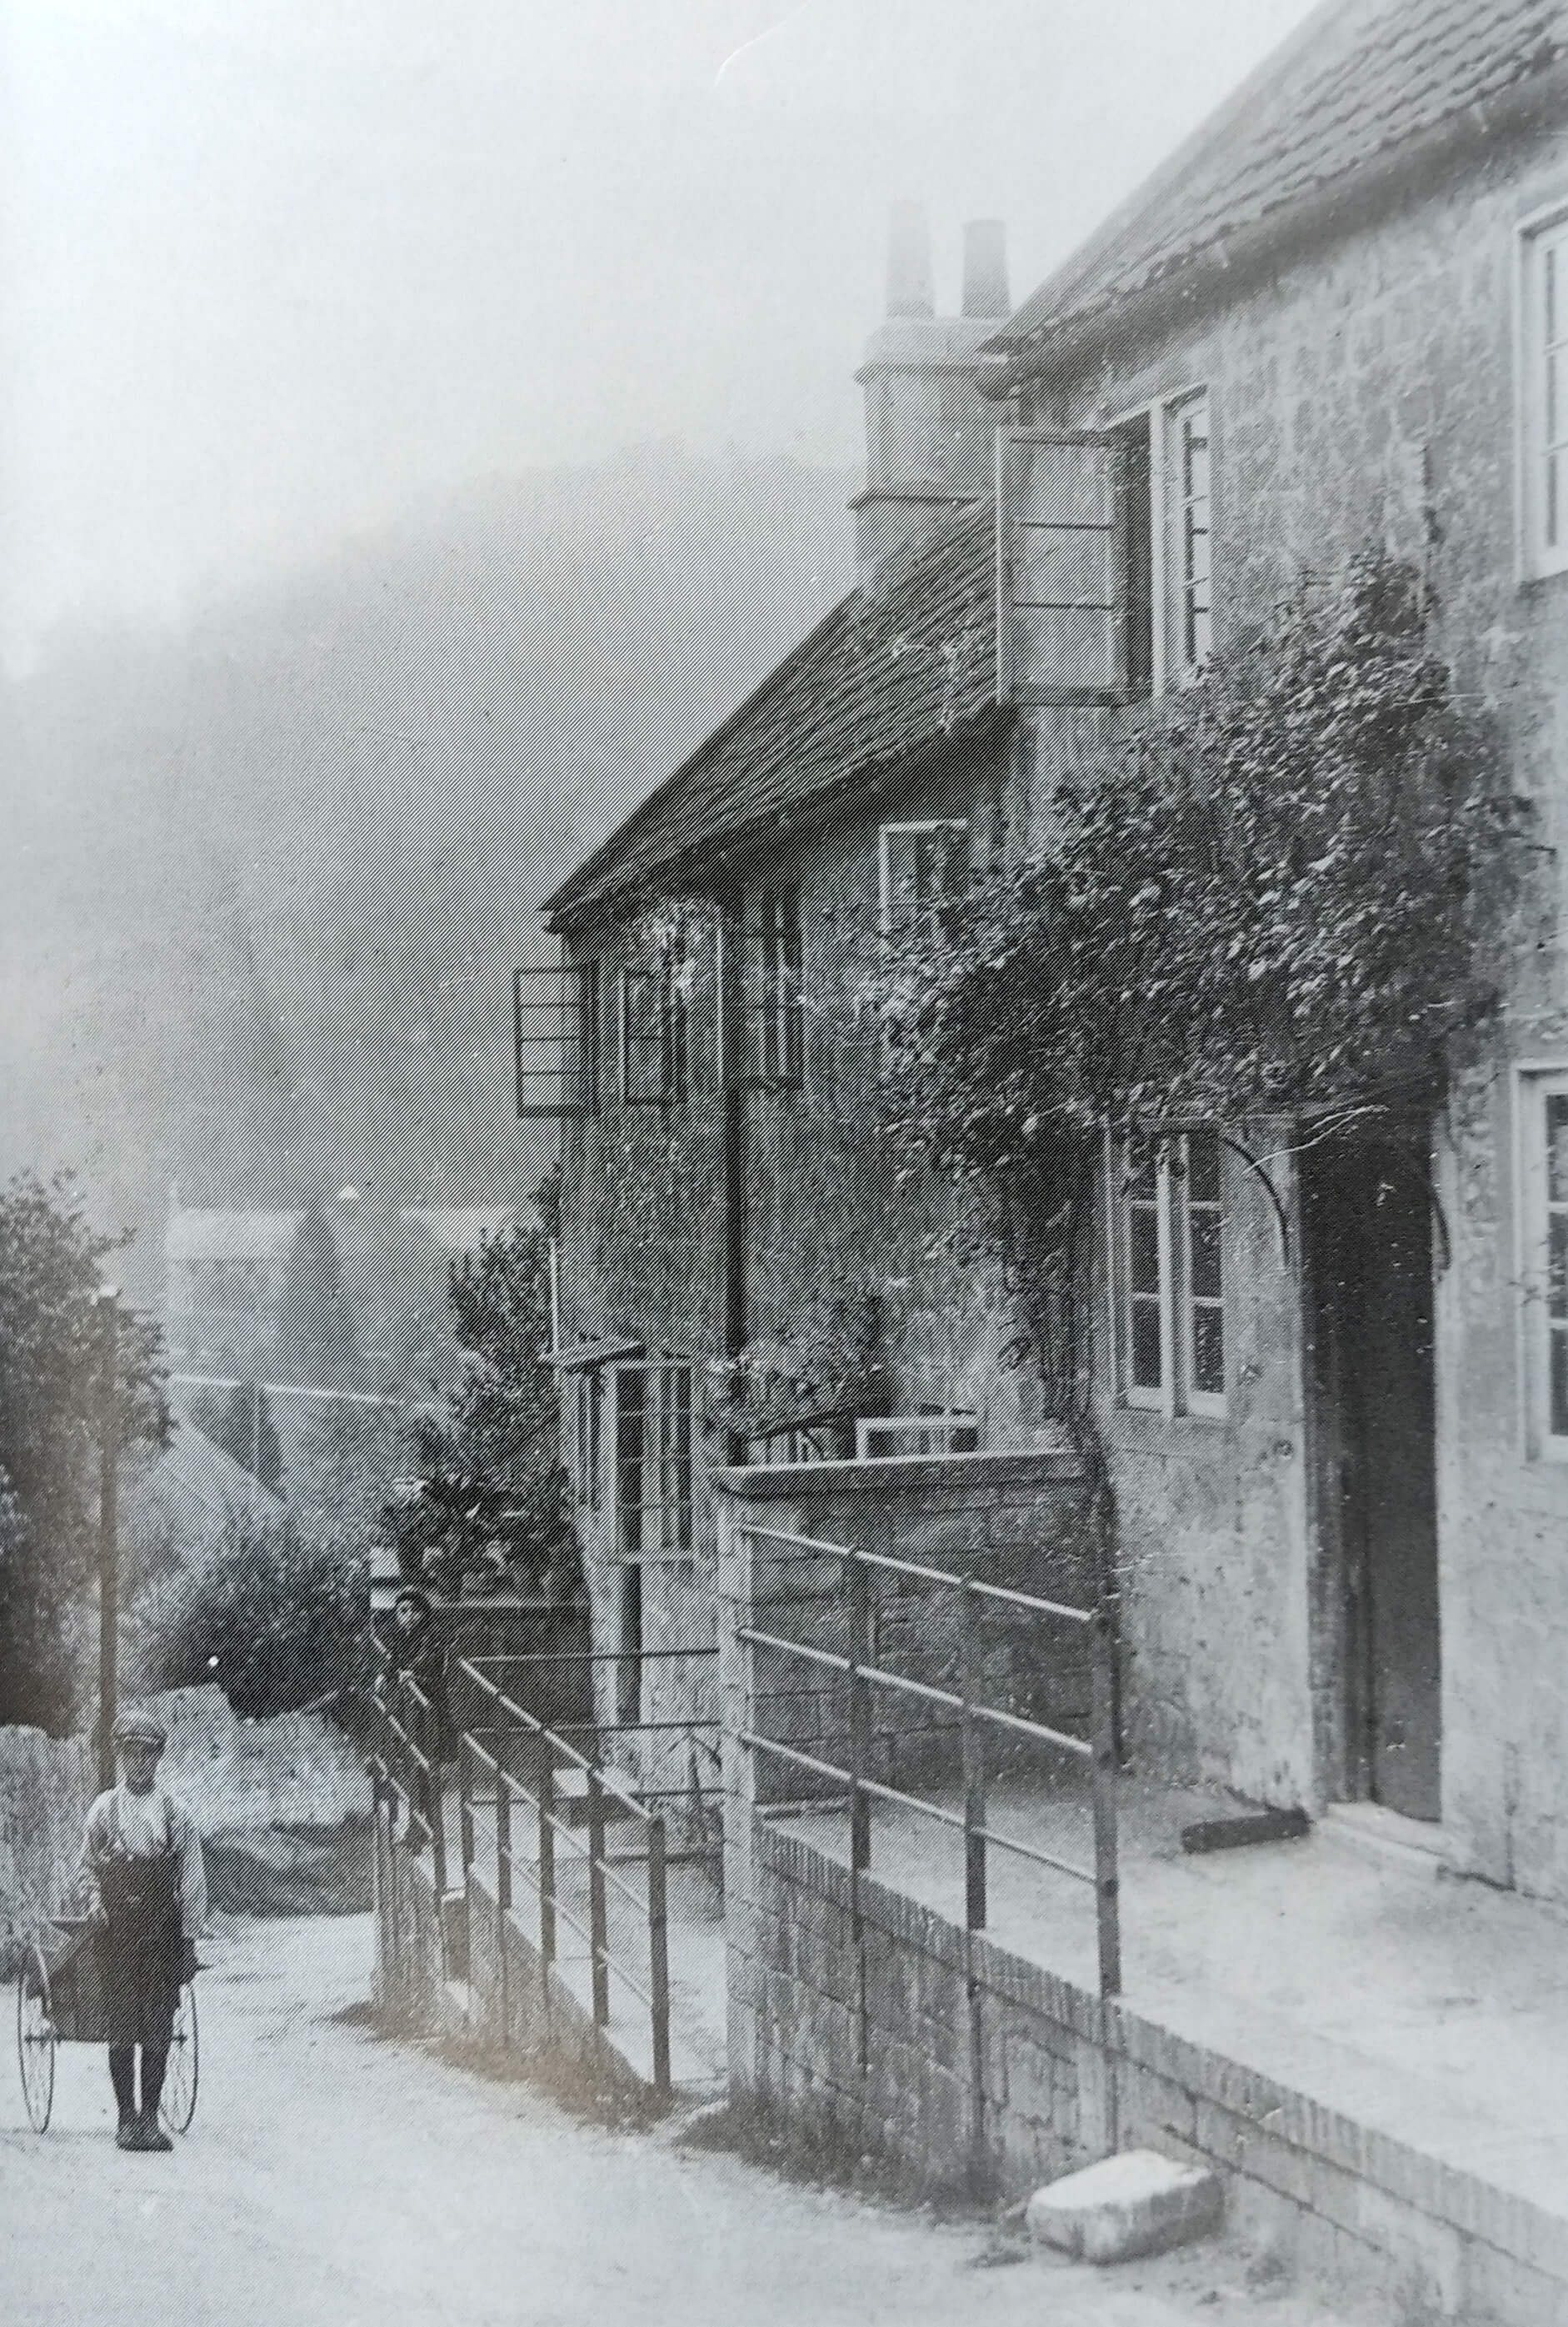 Mill Lane, Monkton Combe about 1912